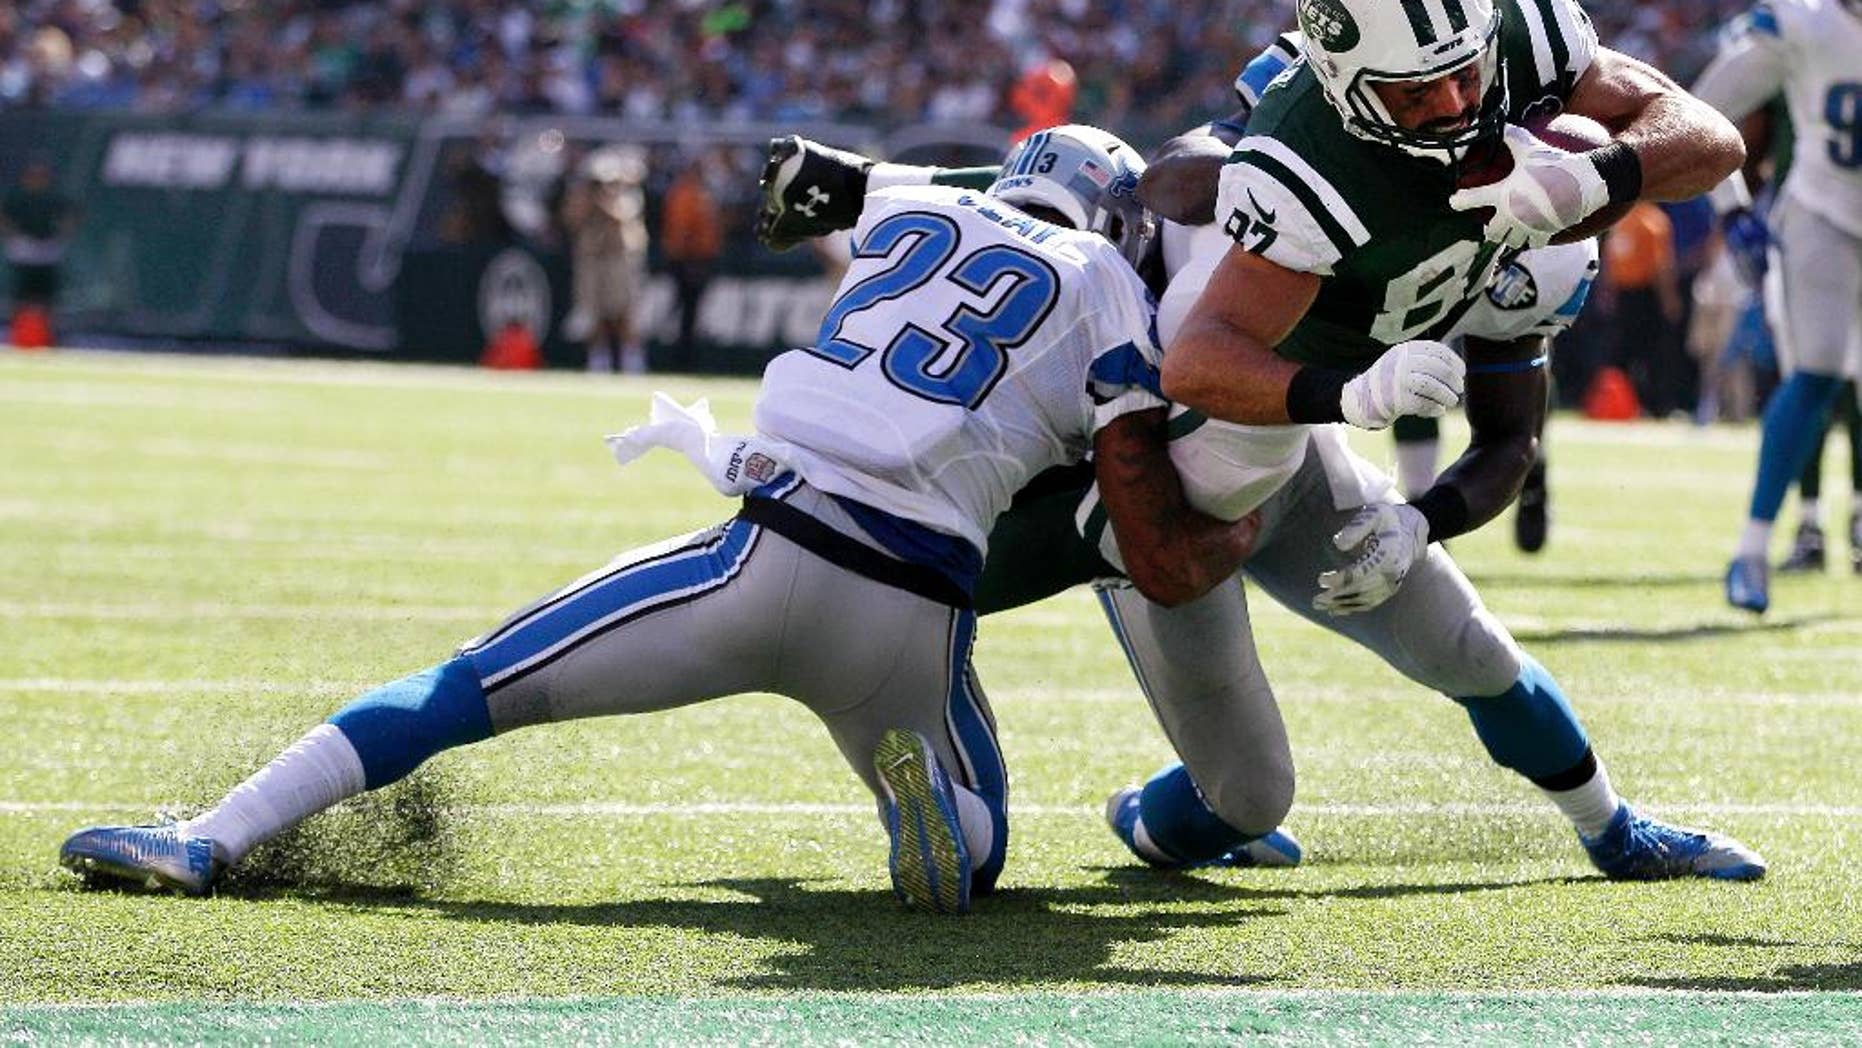 New York Jets wide receiver Eric Decker, center, dives in between Detroit Lions cornerback Darius Slay, left, and outside linebacker Tahir Whitehead for a touchdown during the second half of an NFL football game, Sunday, Sept. 28, 2014, in East Rutherford, N.J. (AP Photo/Frank Franklin II)